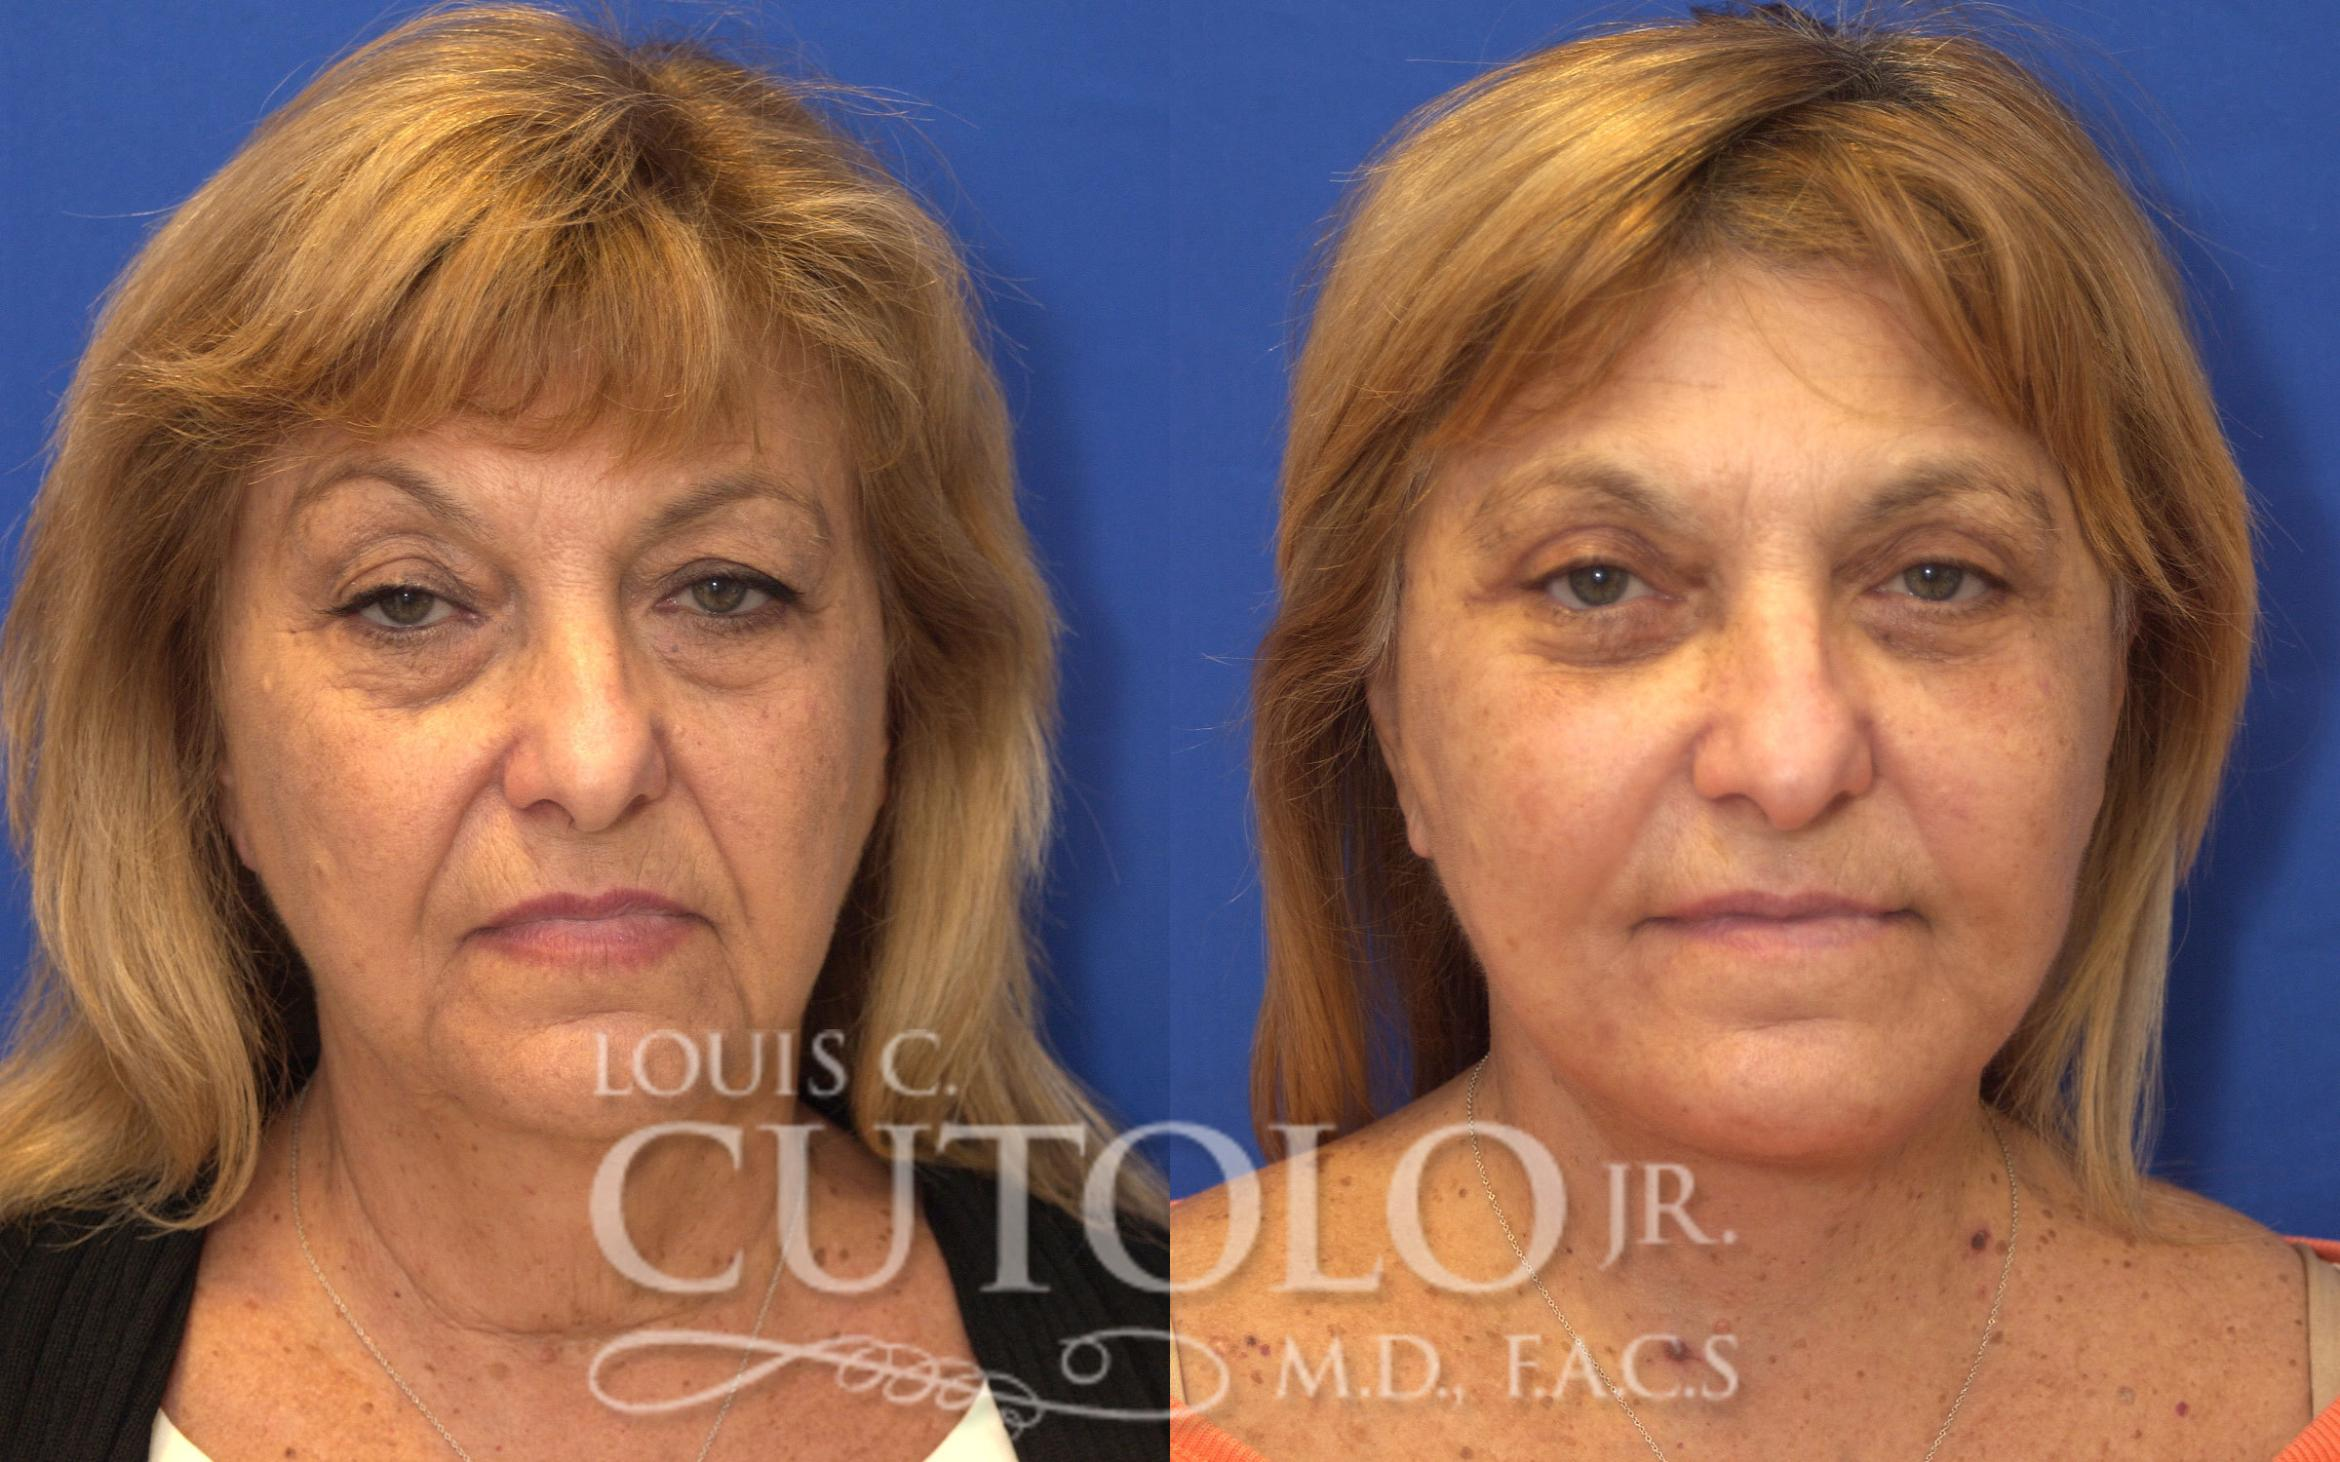 Rejuvelift™ Before & After Photo | Brooklyn, Staten Island, Queens, NY | Louis C. Cotolo, Jr., M.D., F.A.C.S.